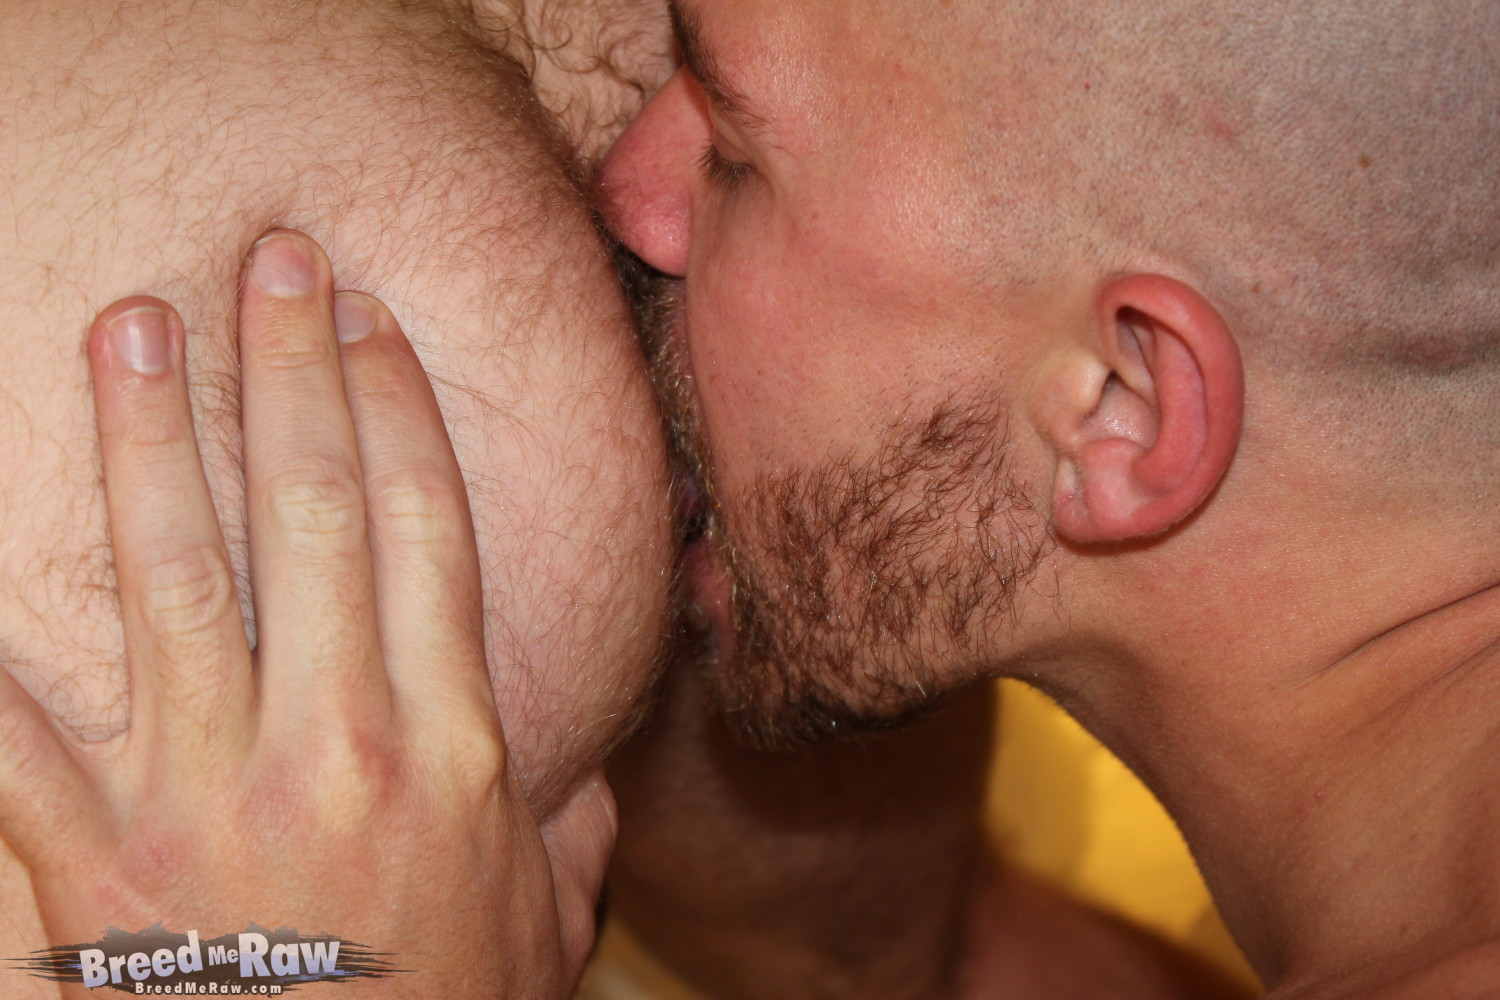 Breed Me Raw Butch Bloom and James Roscoe Bareback Fucking BBBH Big Cock 06 Hairy Hot Amateur Hole Gets Barebacked By A Masculine Hung Cock